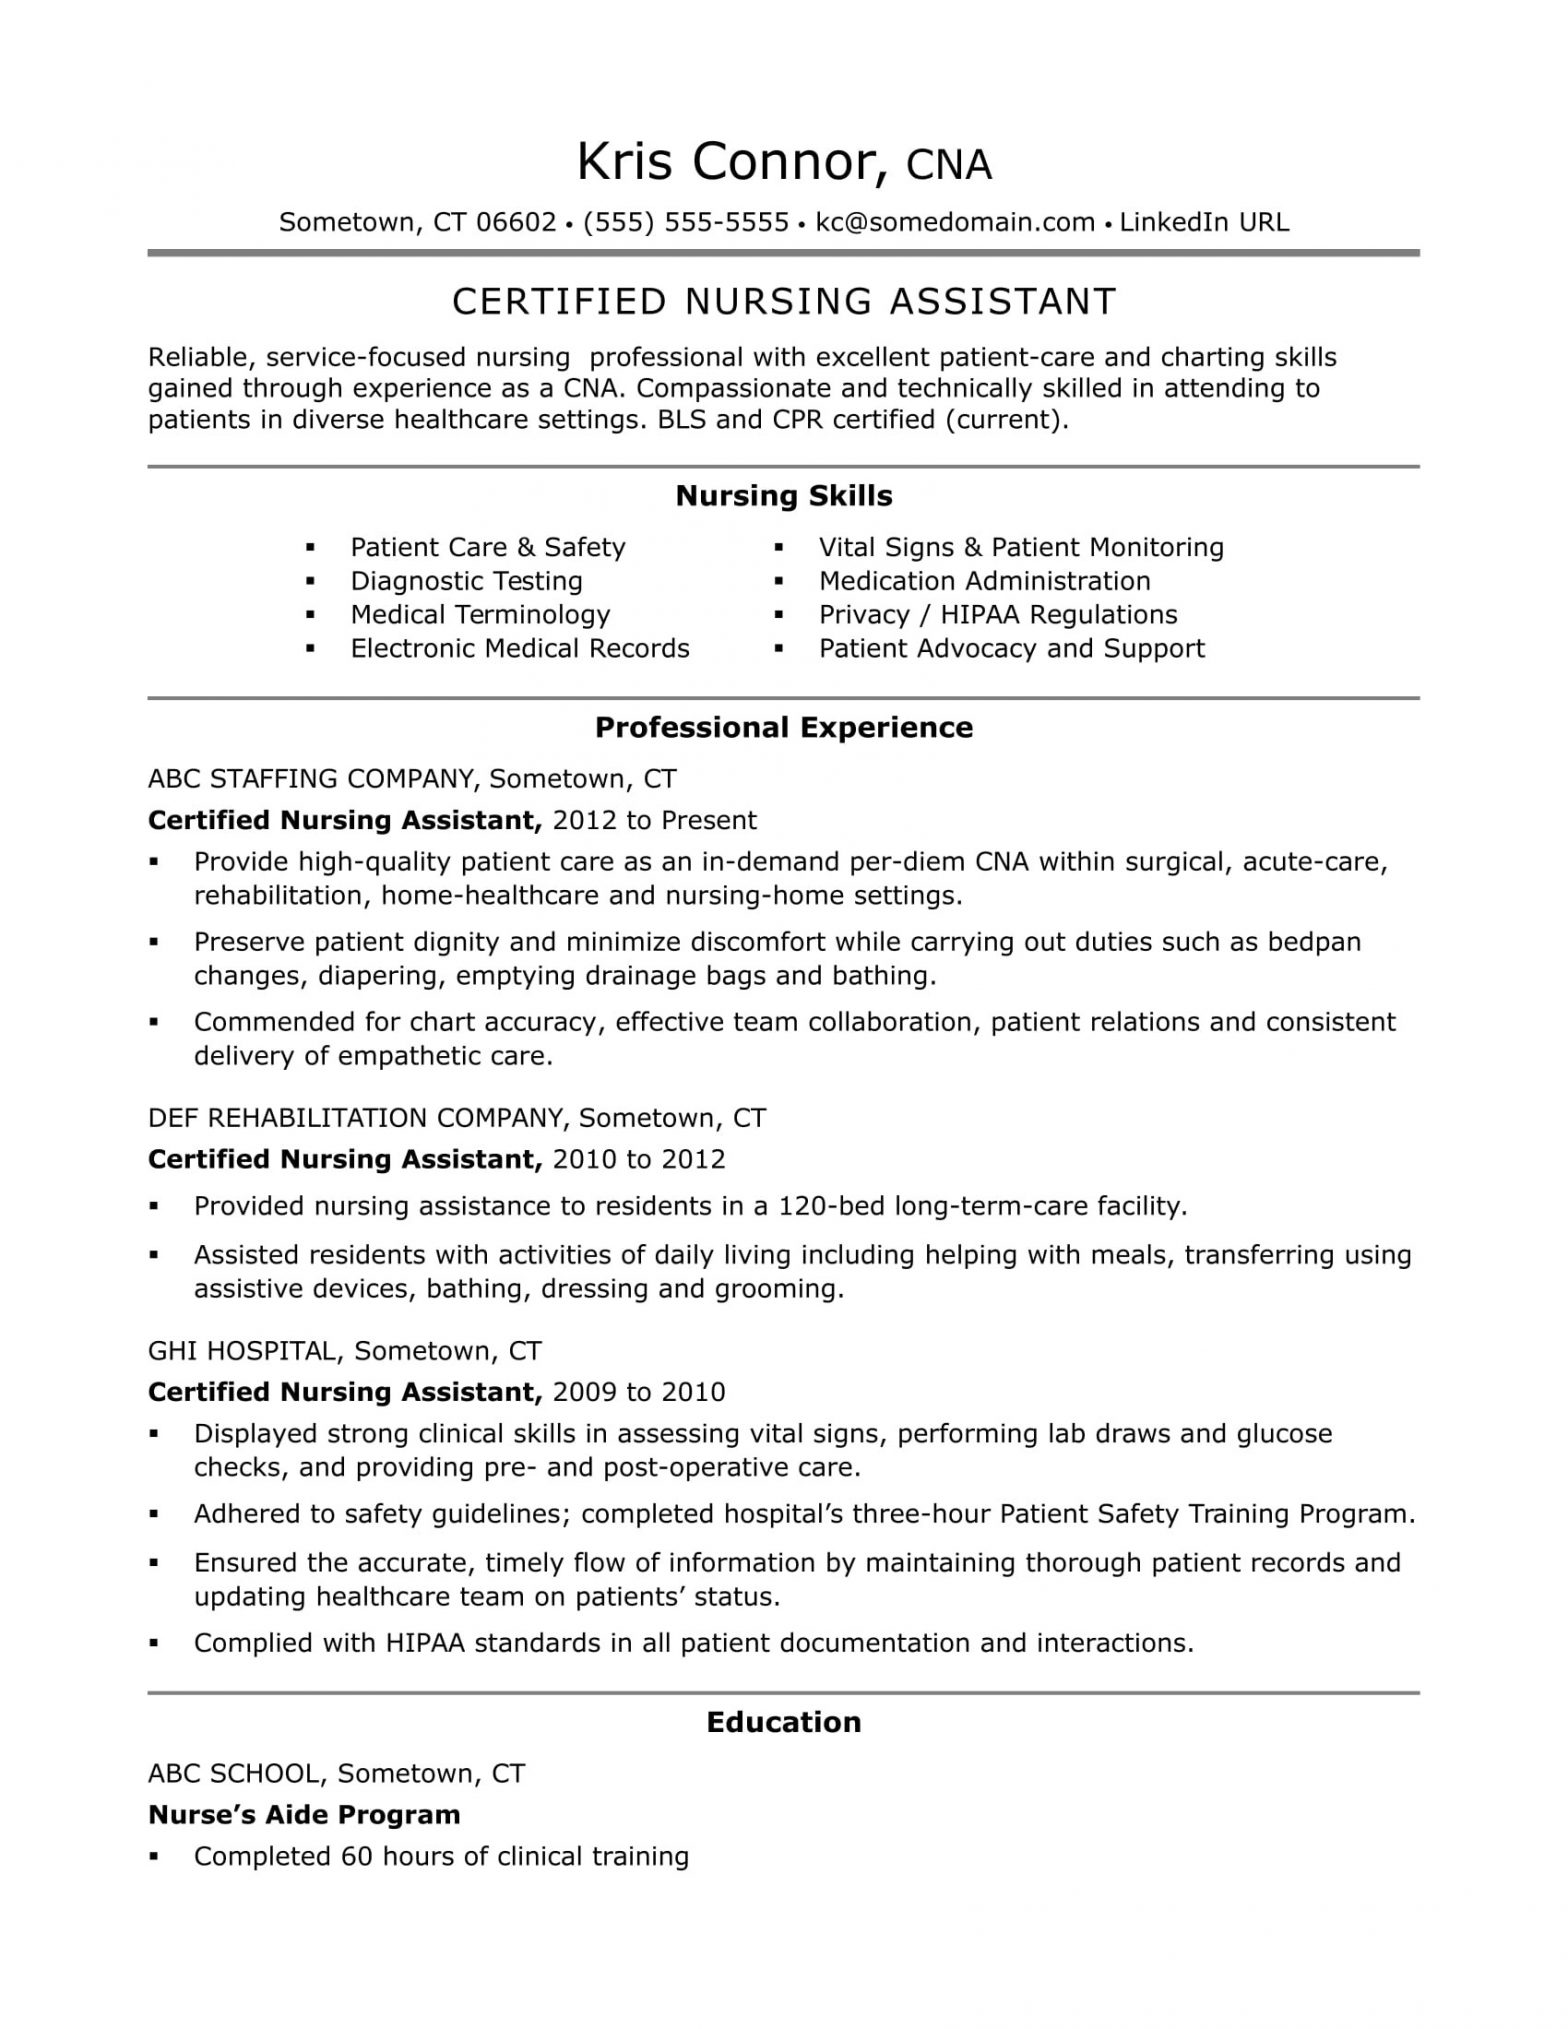 Certified Nursing assistant Resume Sample with Experience Cna Resume Examples: Skills for Cnas Monster.com